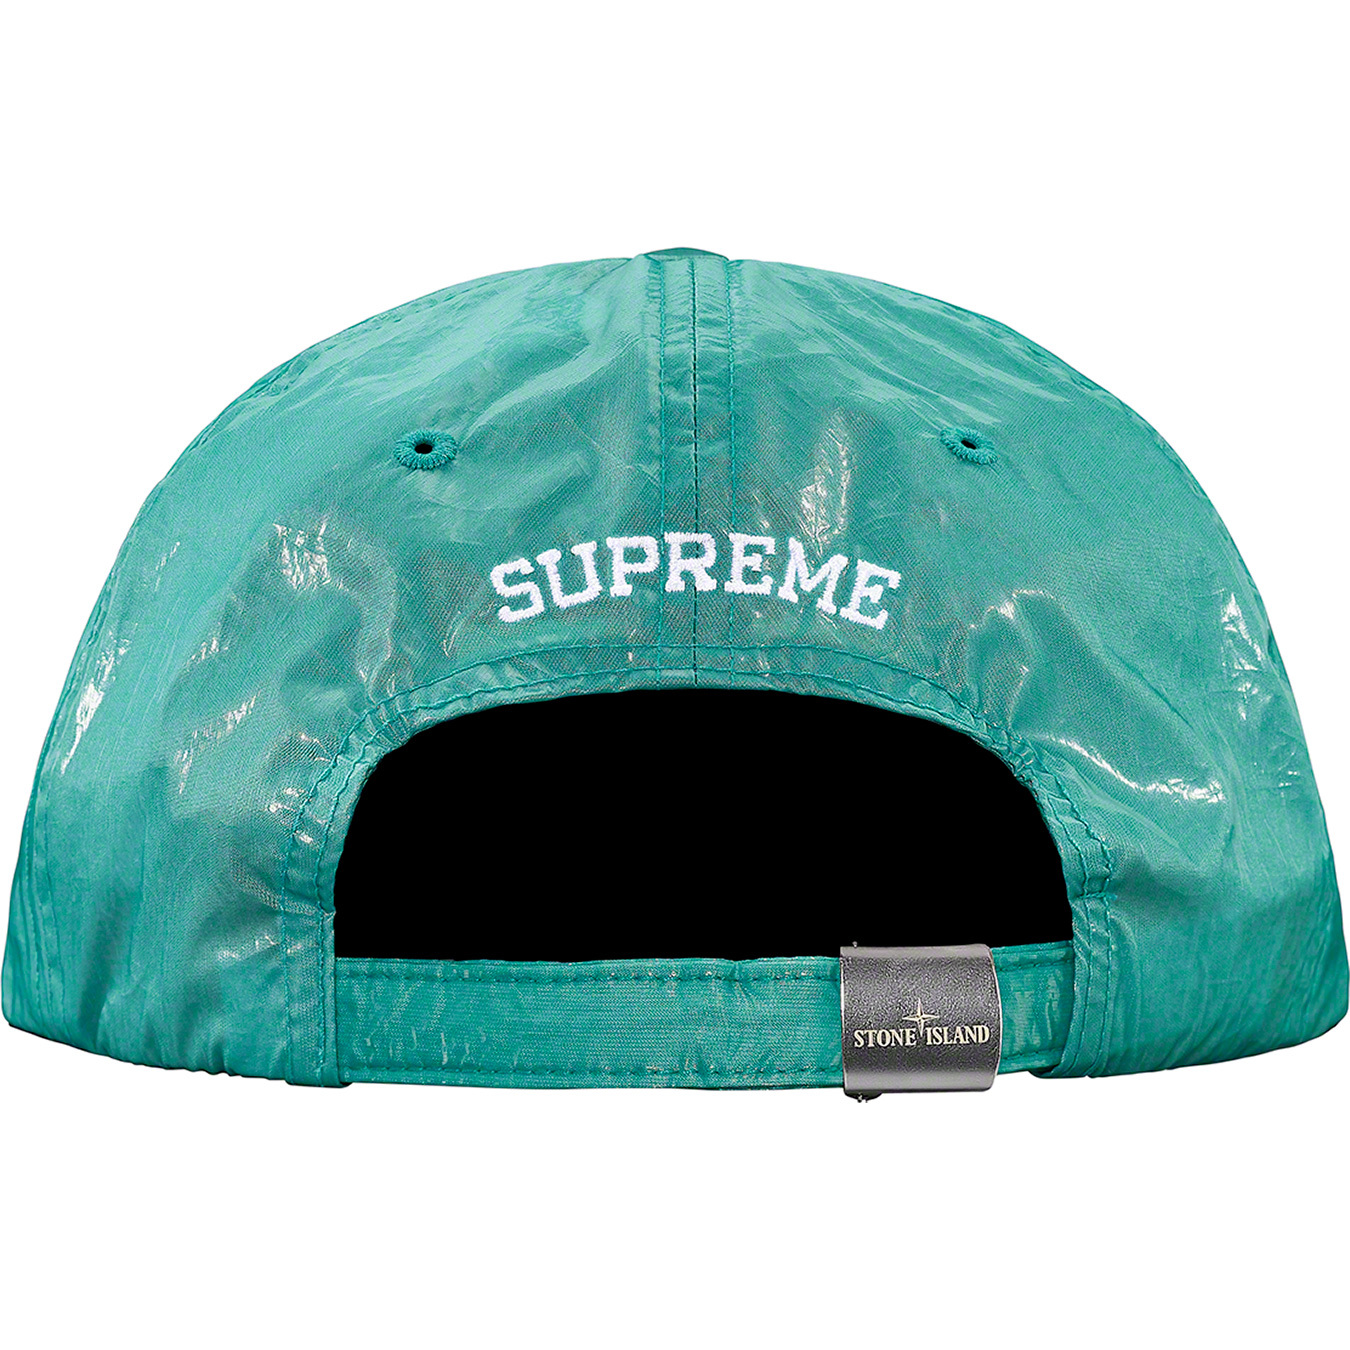 supreme-stone-island-new-silk-light-6-panel-19ss-week3